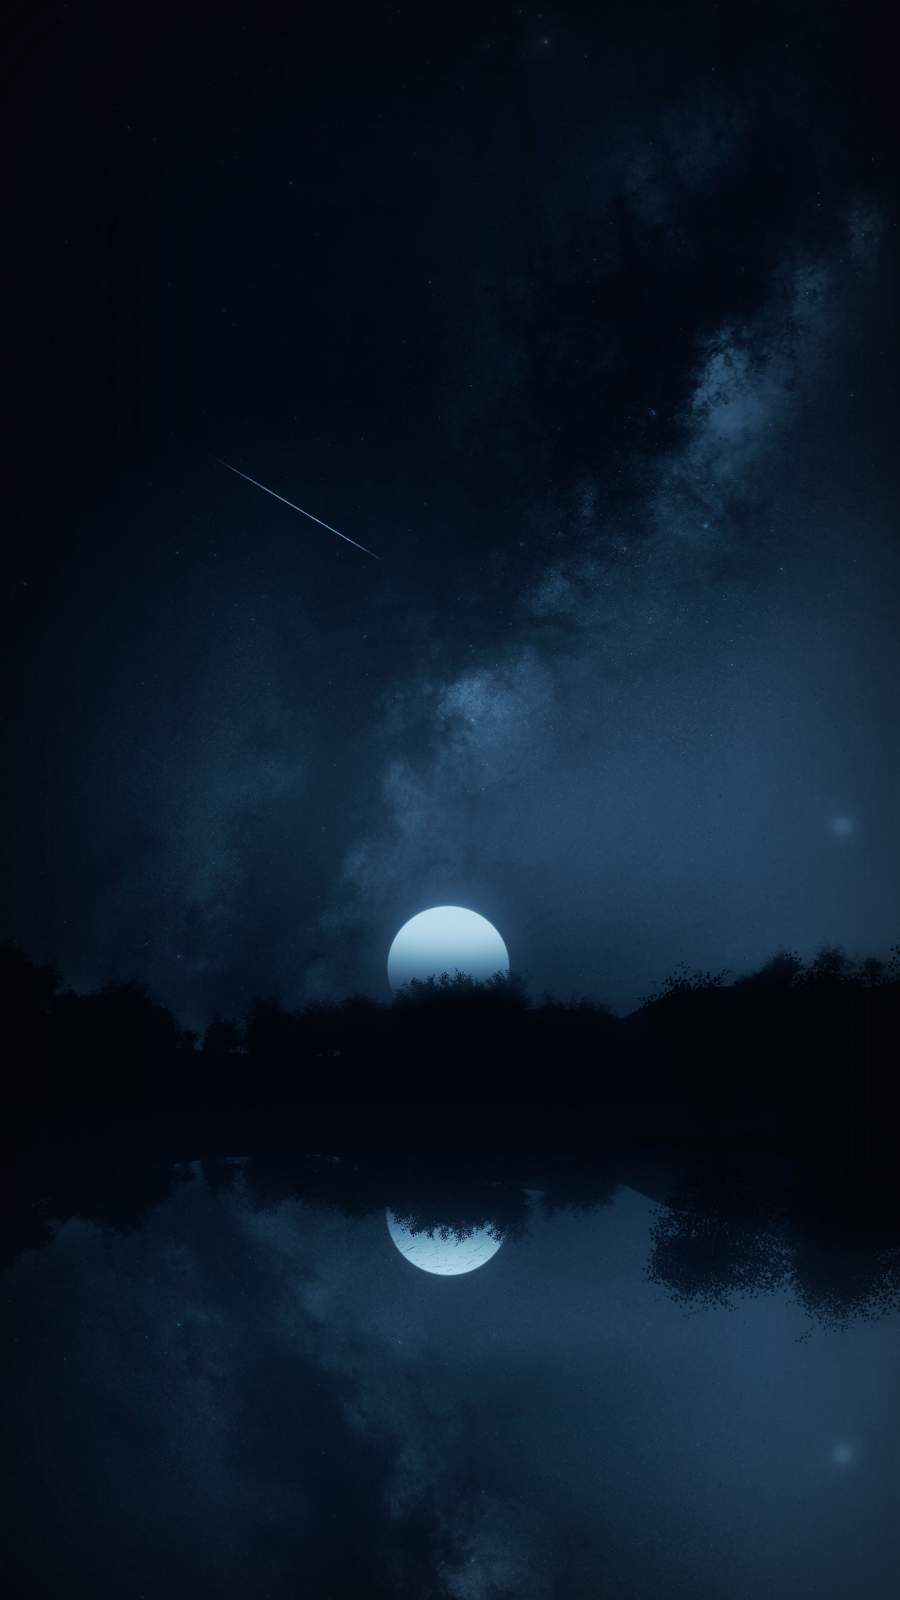 Night Moon Space Reflection